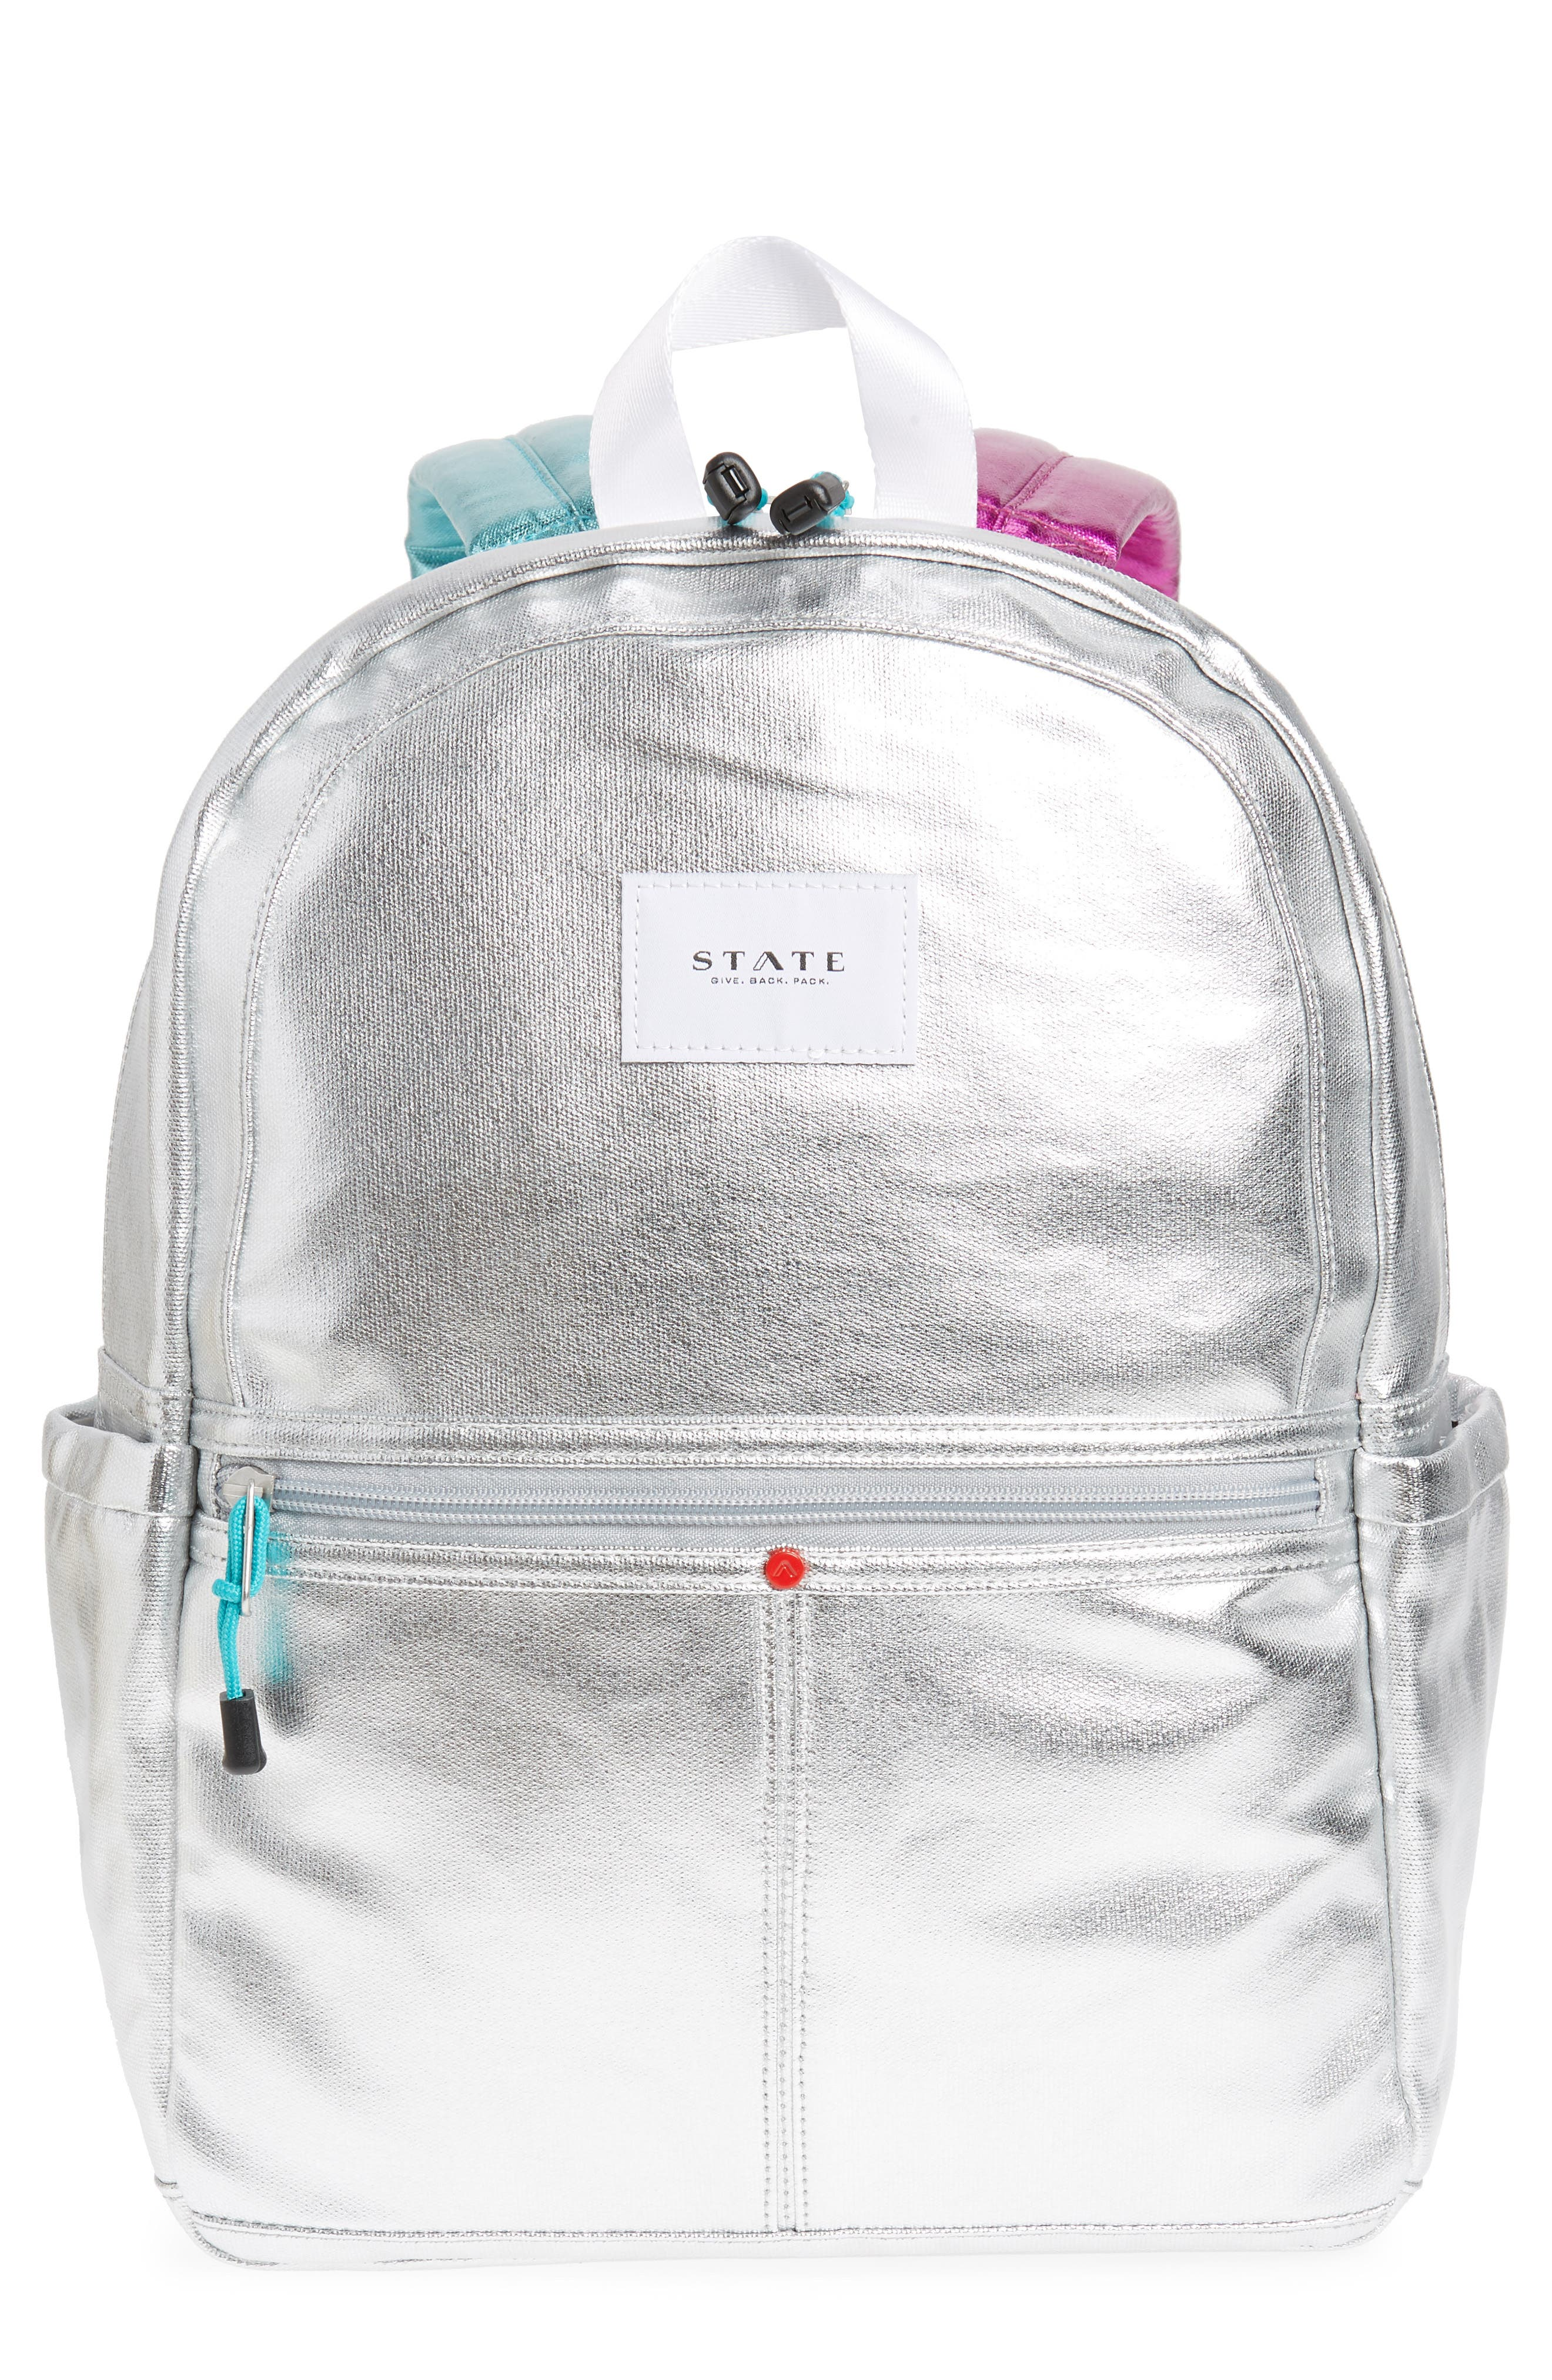 Kane Metallic Backpack,                         Main,                         color,